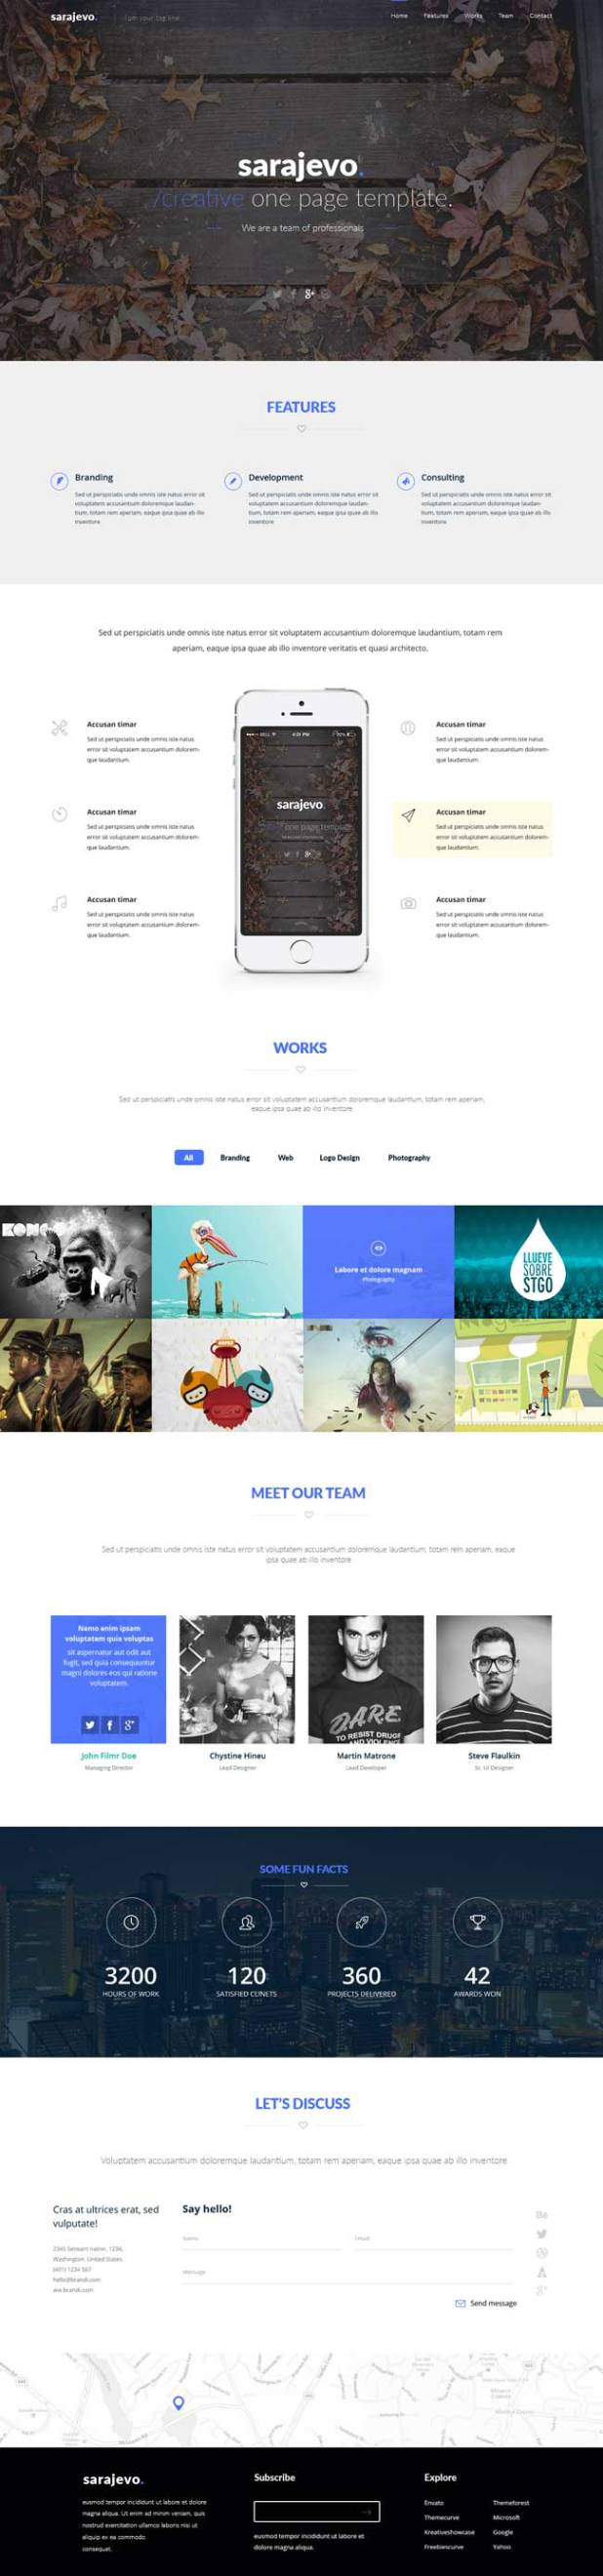 Sarajevo-Free-Clean-Landing-Page-PSD-Template-Preview